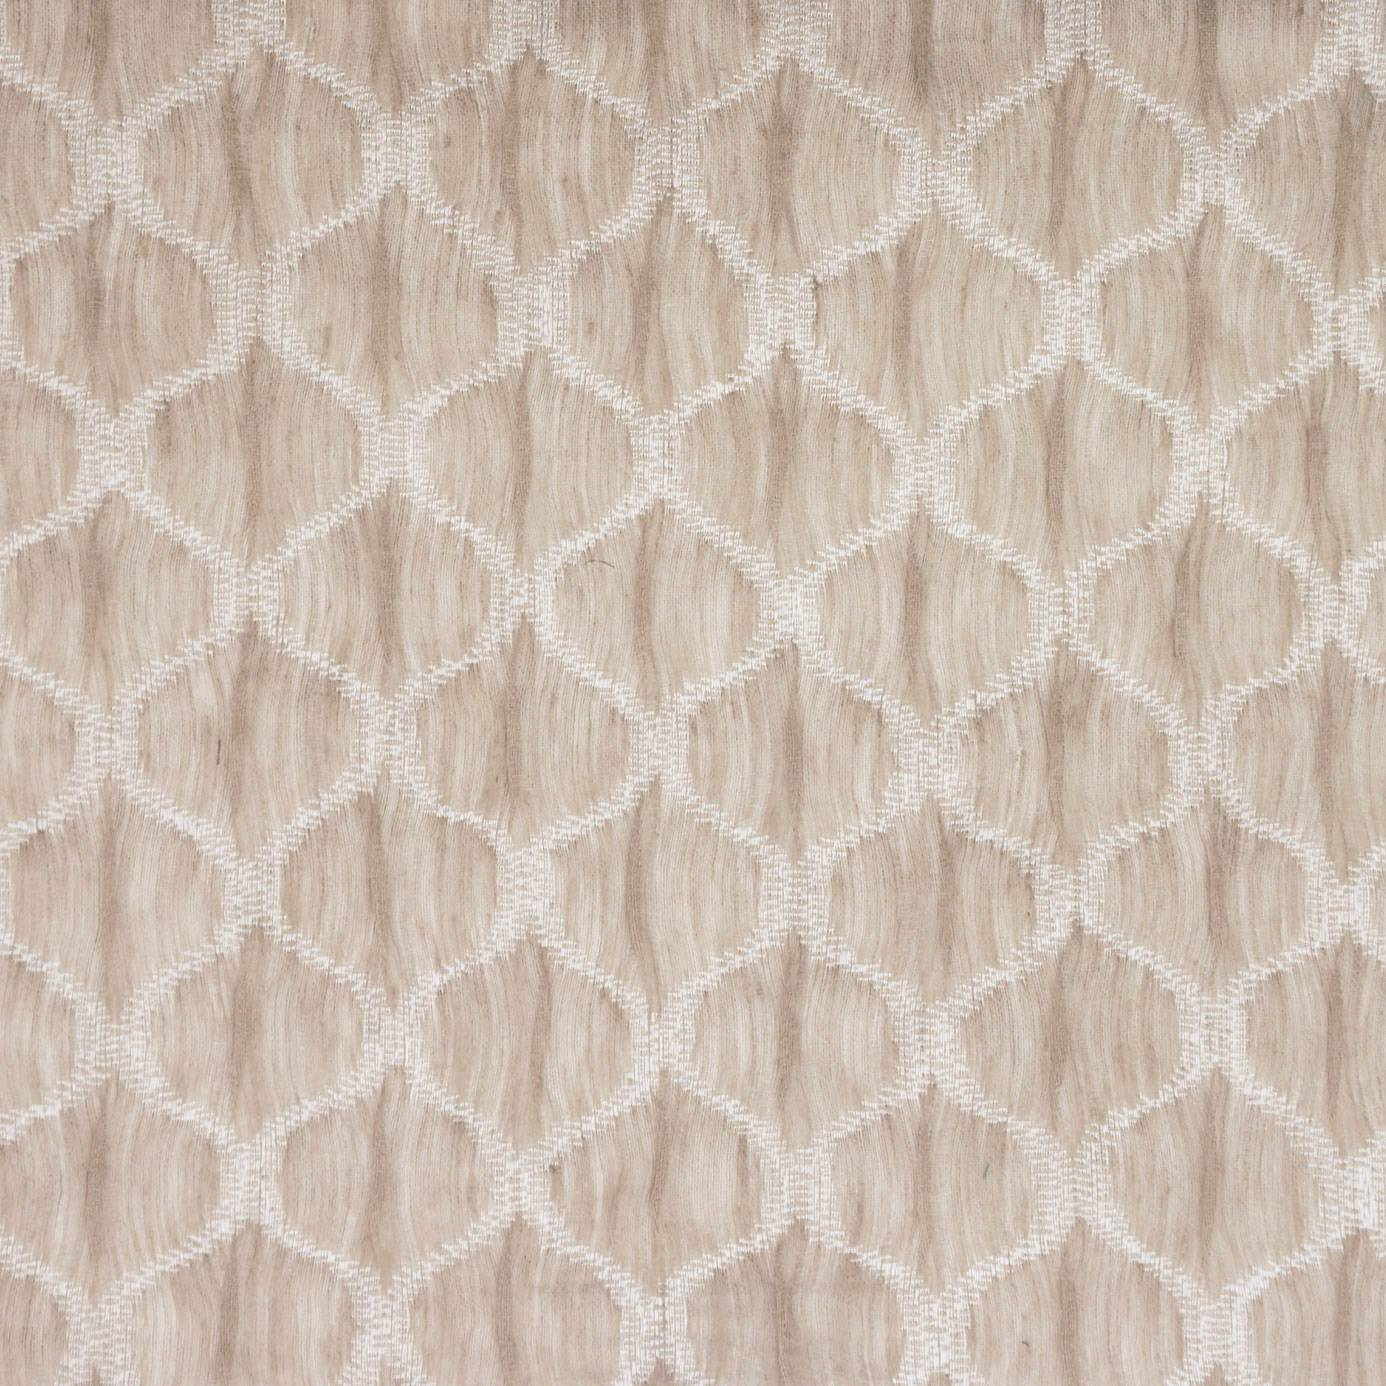 Deco fabric taupe f0574 07 clarke clarke cadoro fabrics collection - Deco toiletten taupe ...